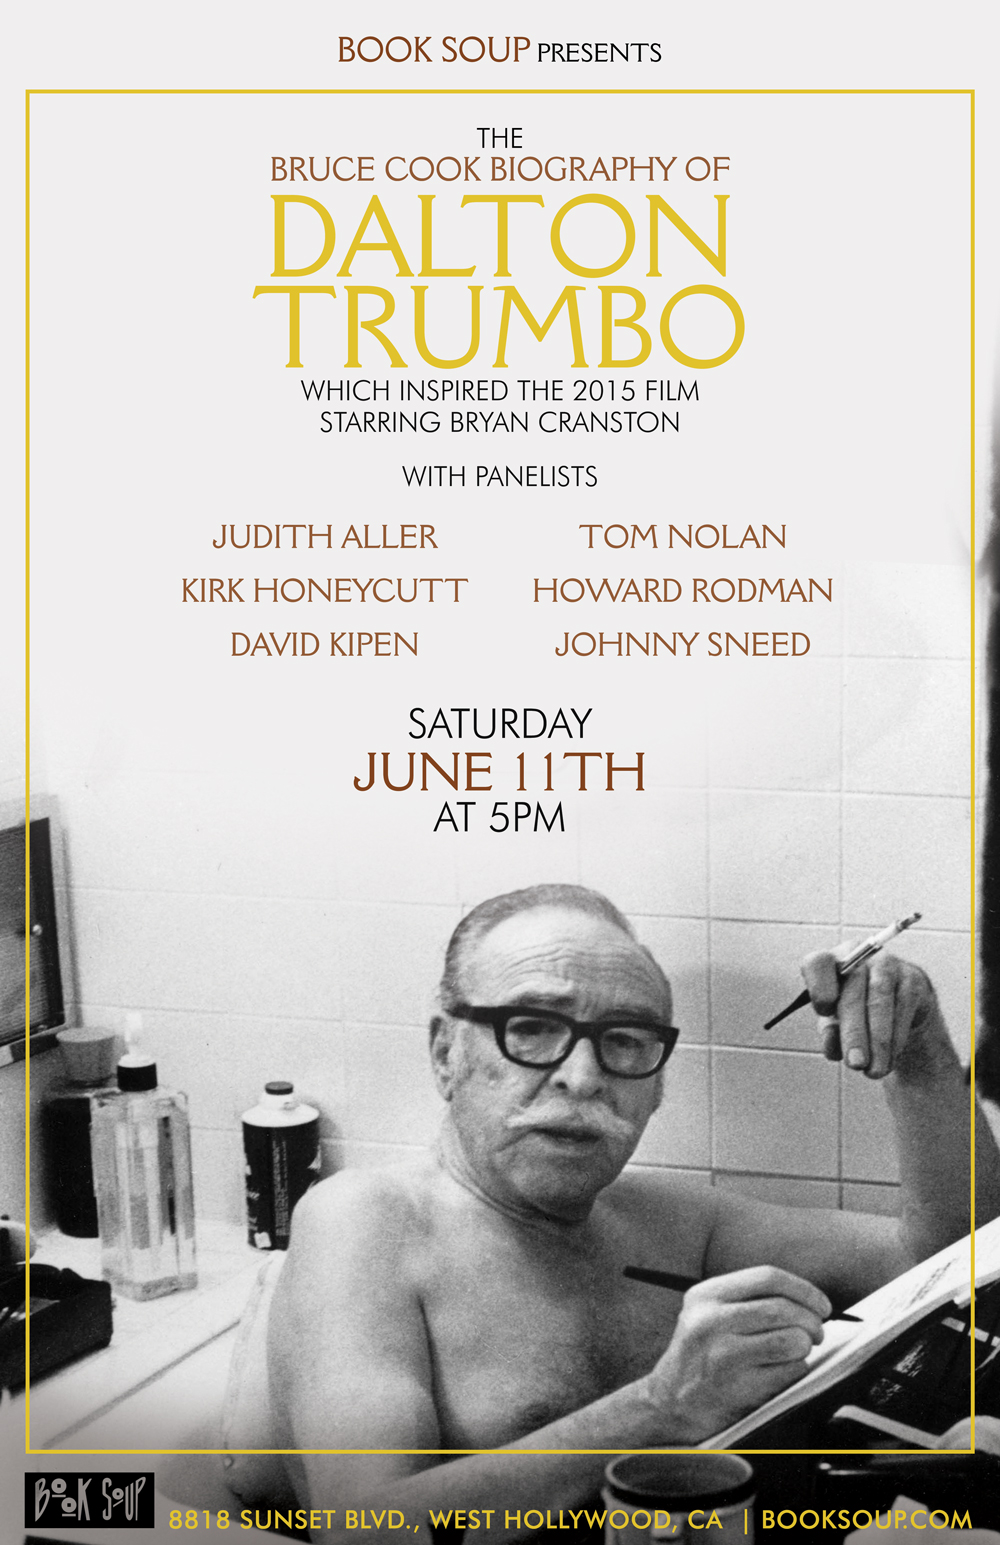 Trumbo---Book-Soup-Flyer--WEB (1)